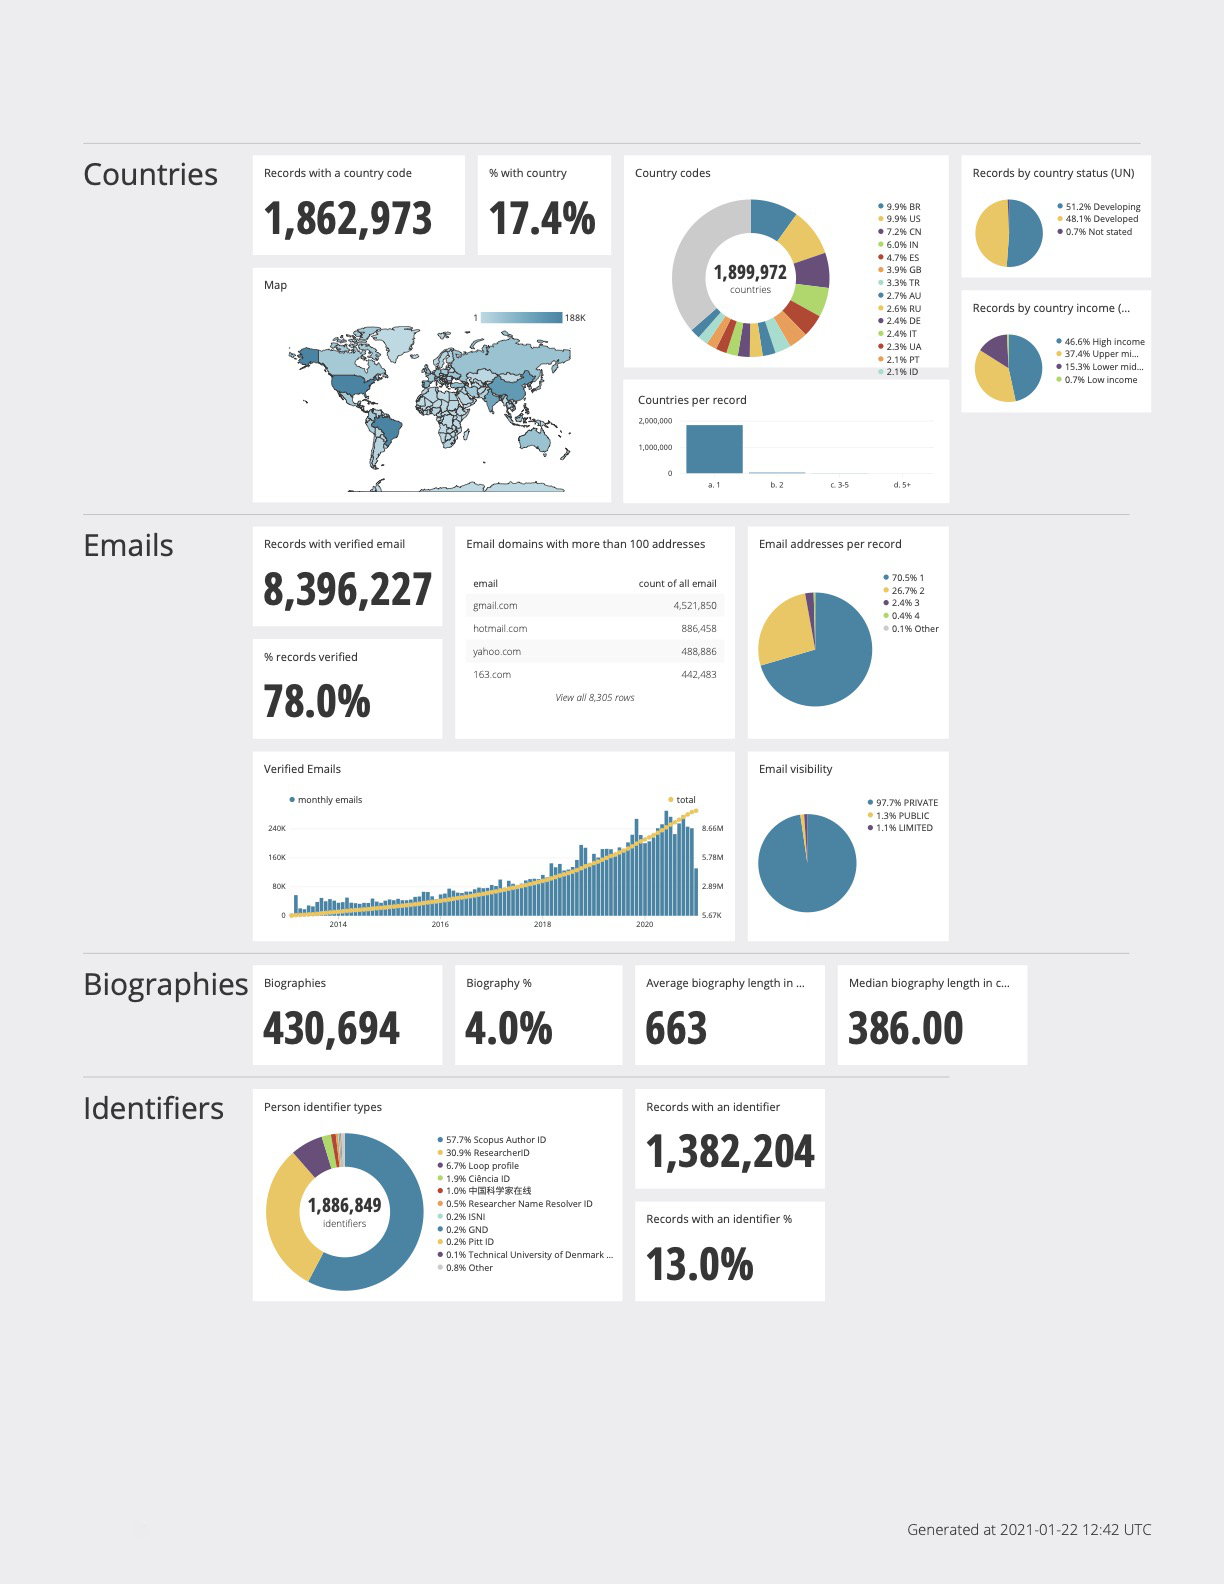 Image containing various charts about ORCID use